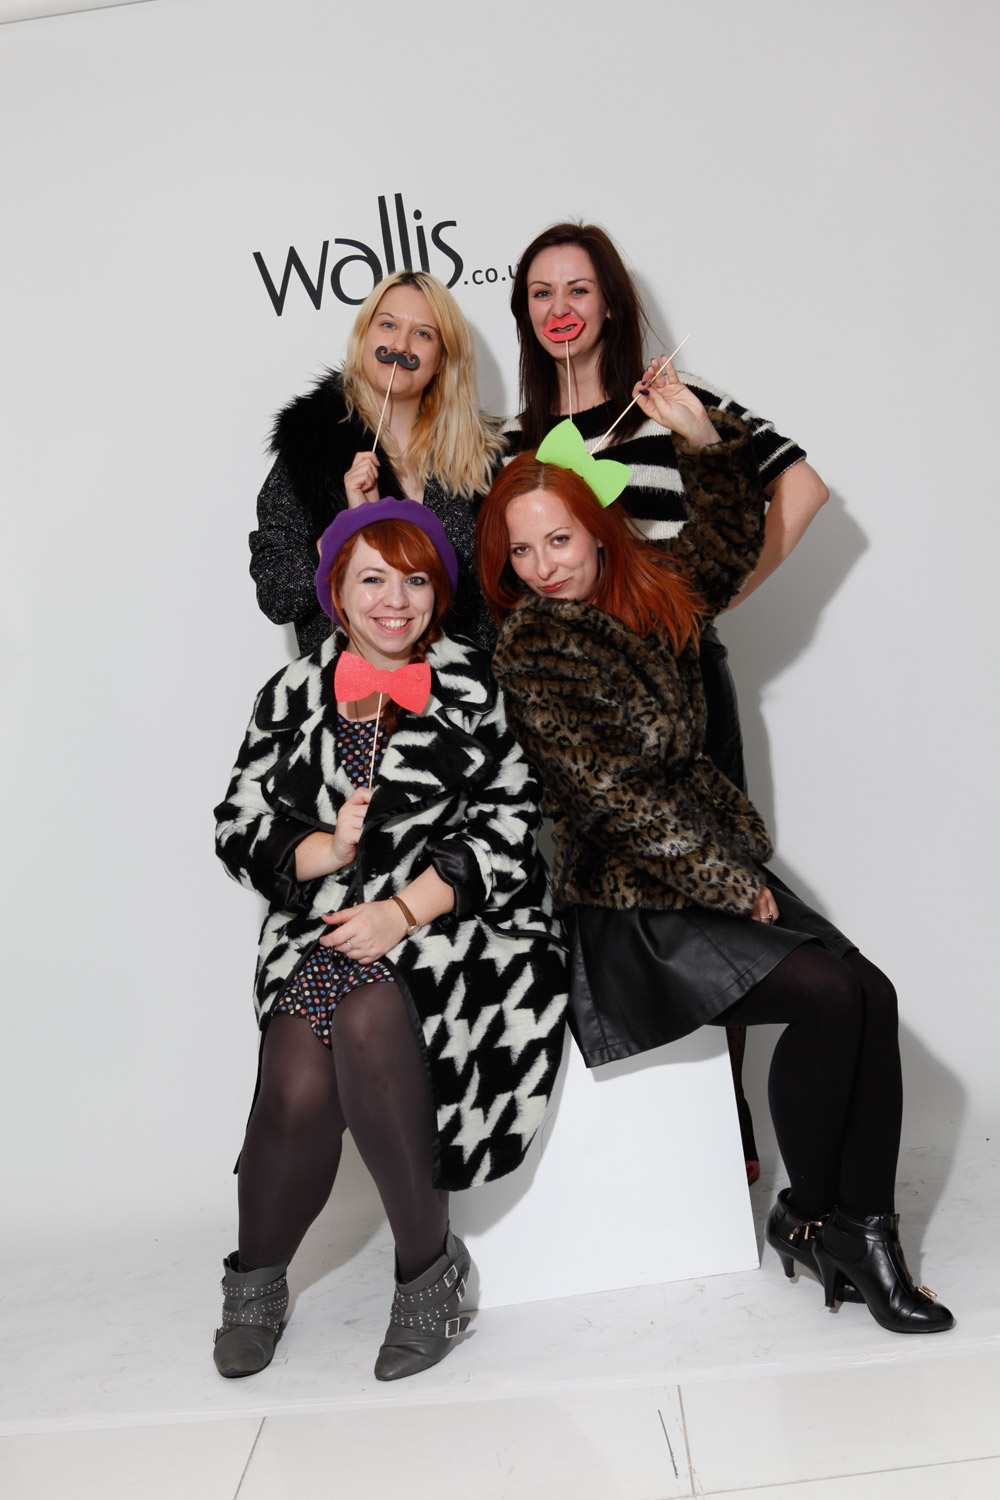 Amy (Wolf Whistle), Becky (lifestyleflash.com), Sarah (Essbeevee) and Maria (Miss Drifted Snow White) at Wallis' Christmas blogger event